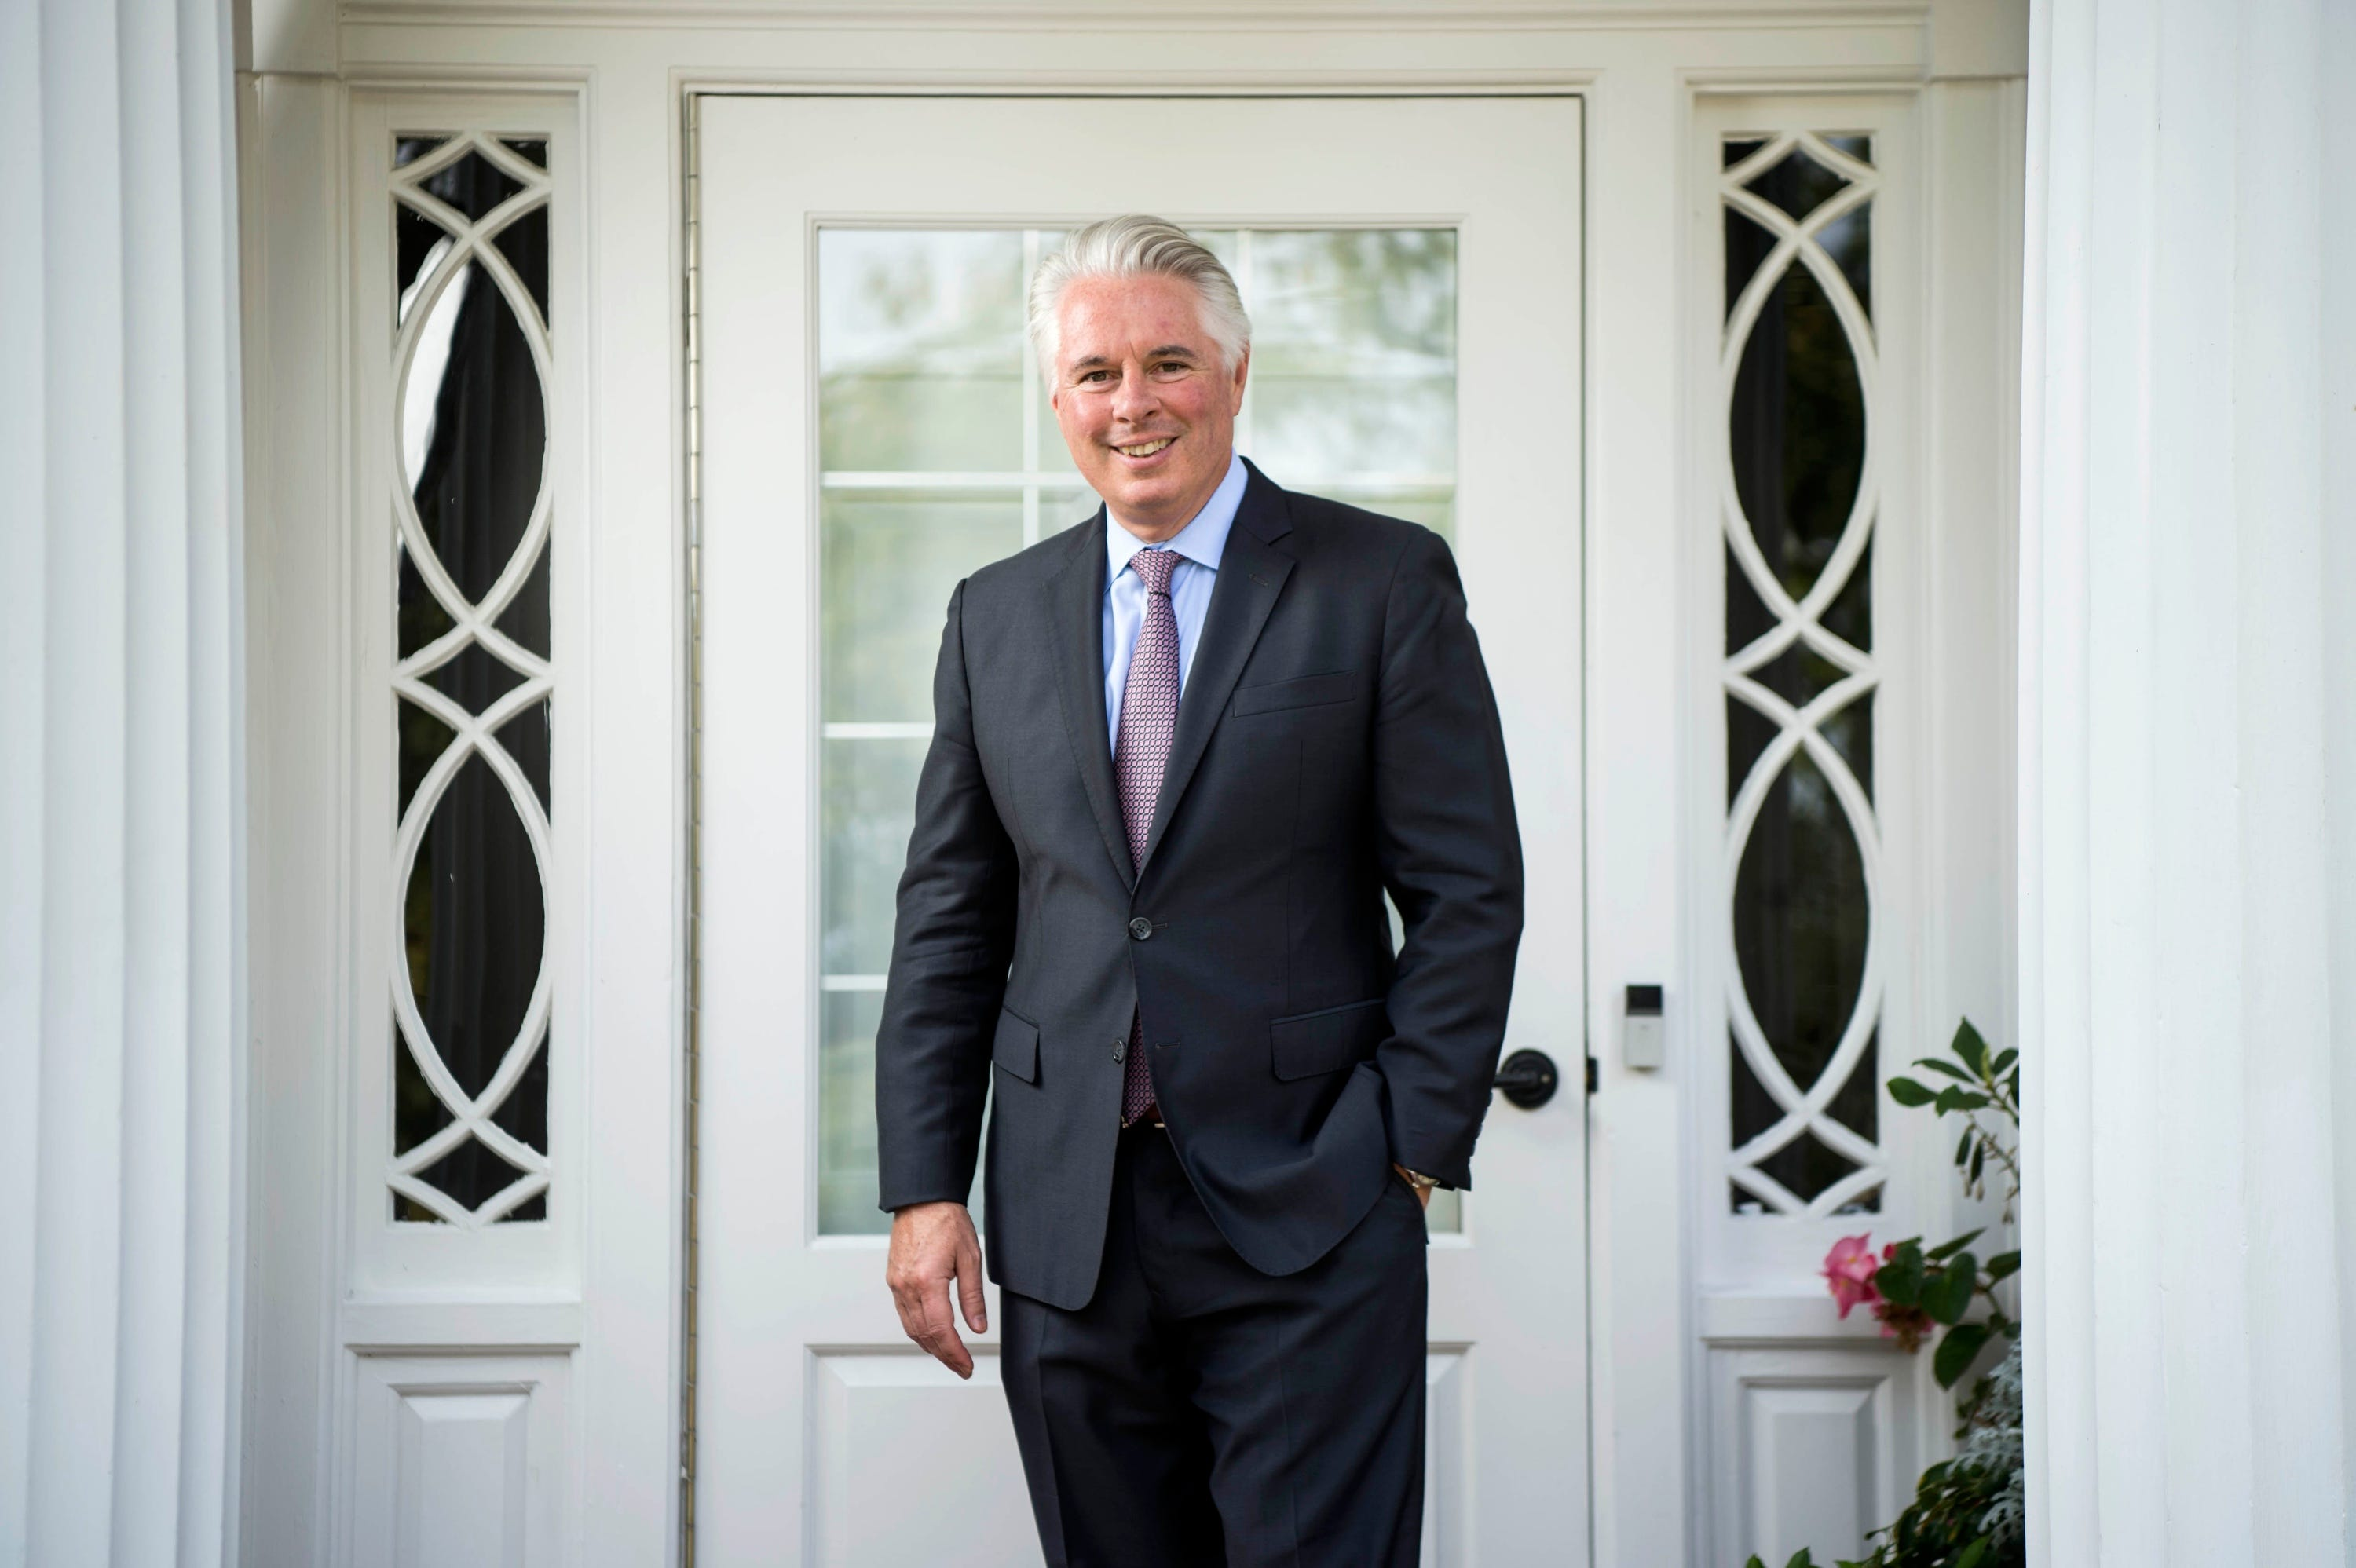 David Greene, president of Colby College, poses for a portrait on the front steps of the Osborne House on the campus in Waterville, Maine.